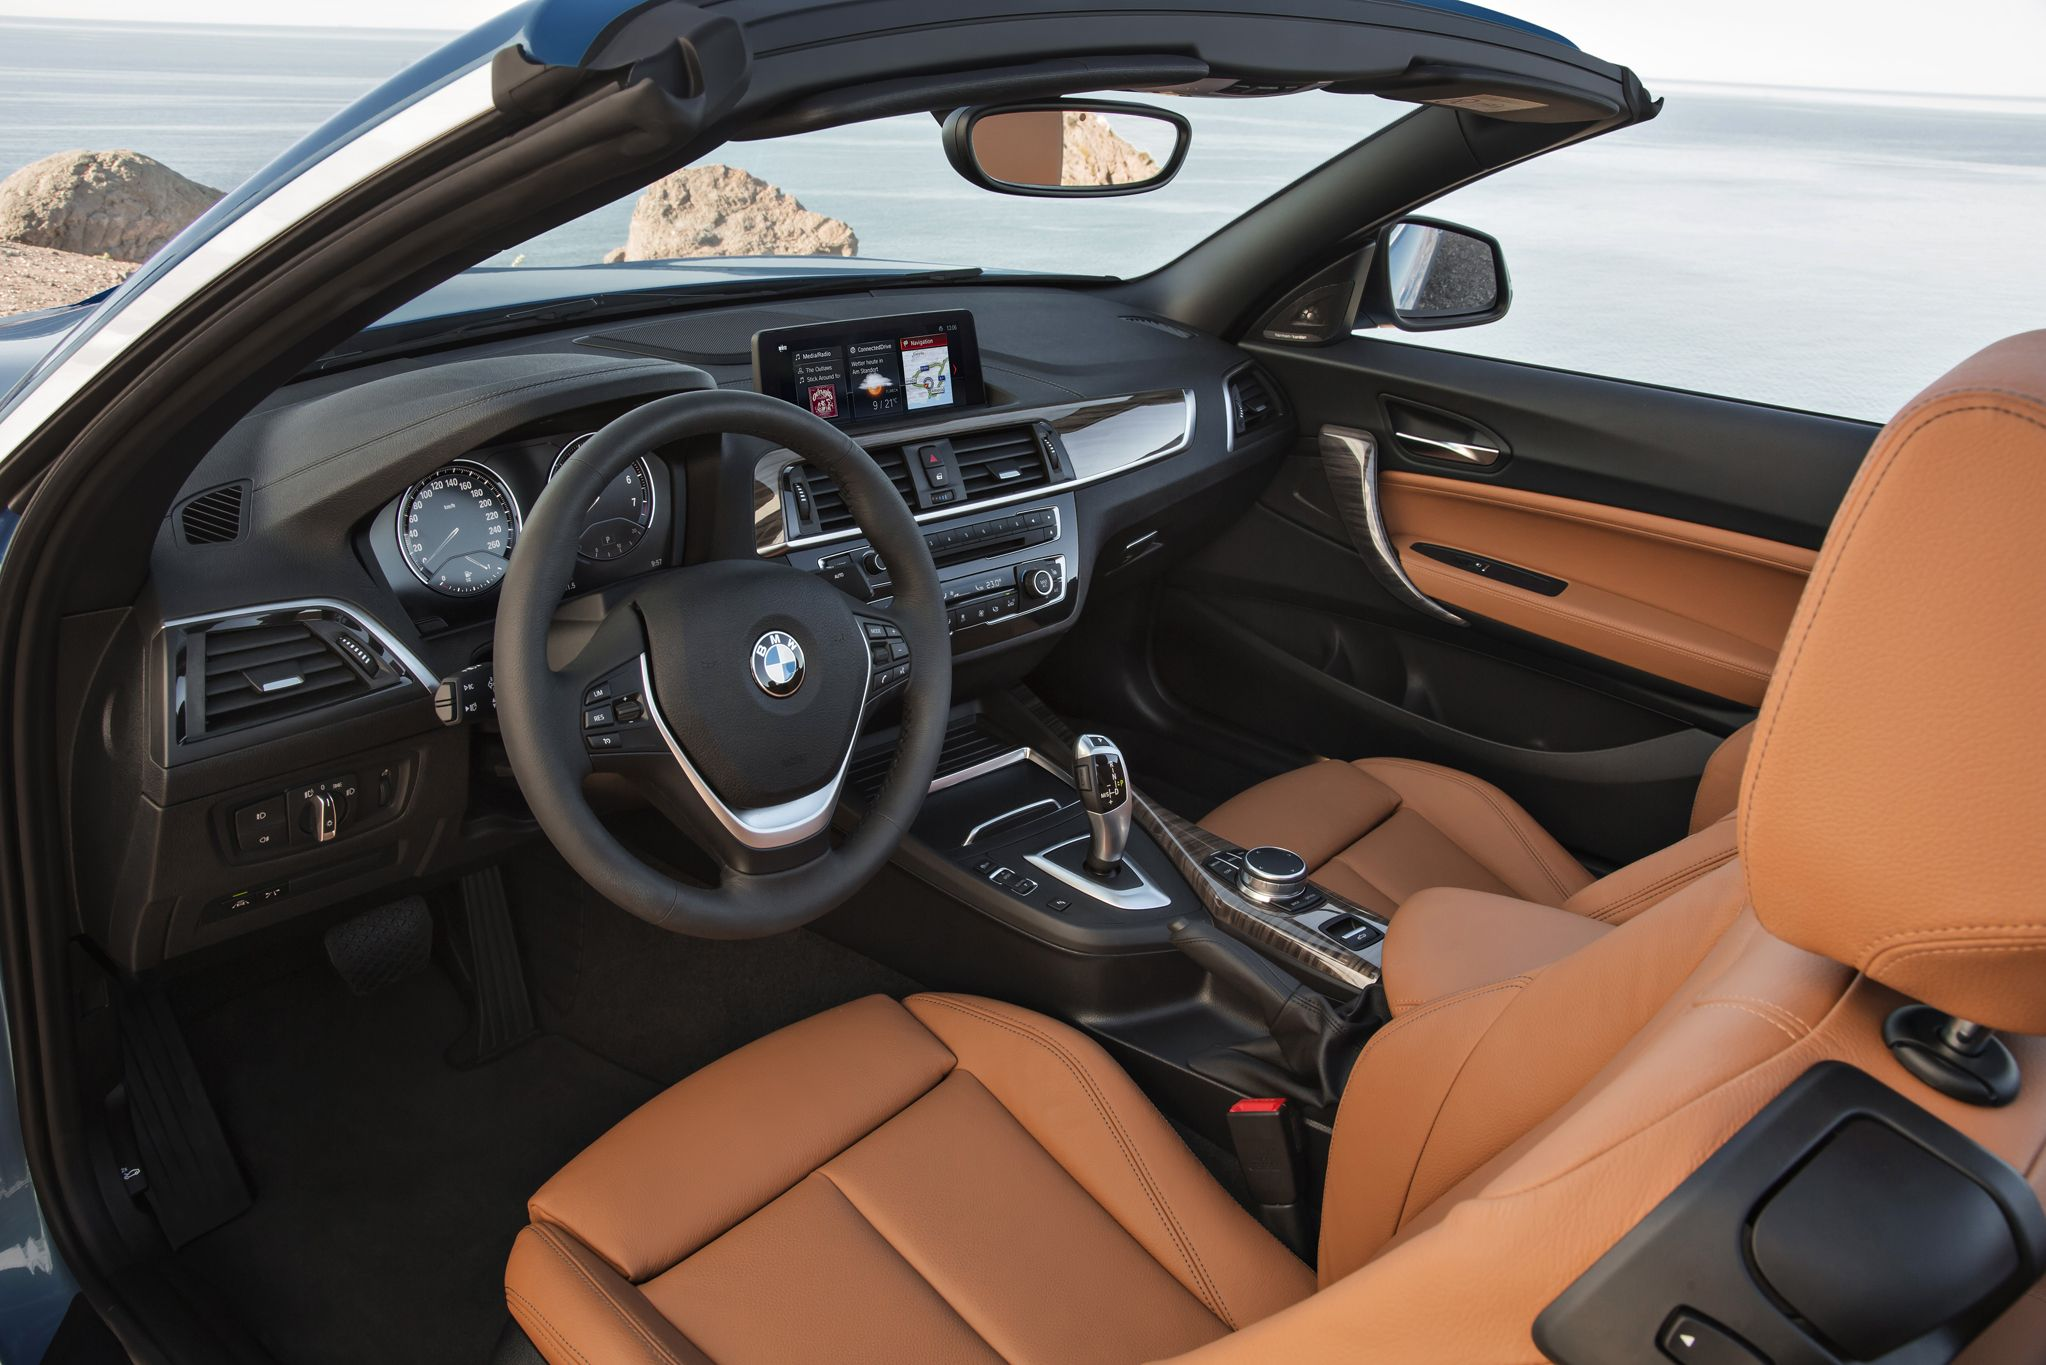 Pin By Elizabeth On Cars In 2020 With Images Bmw 2 Bmw New Cars